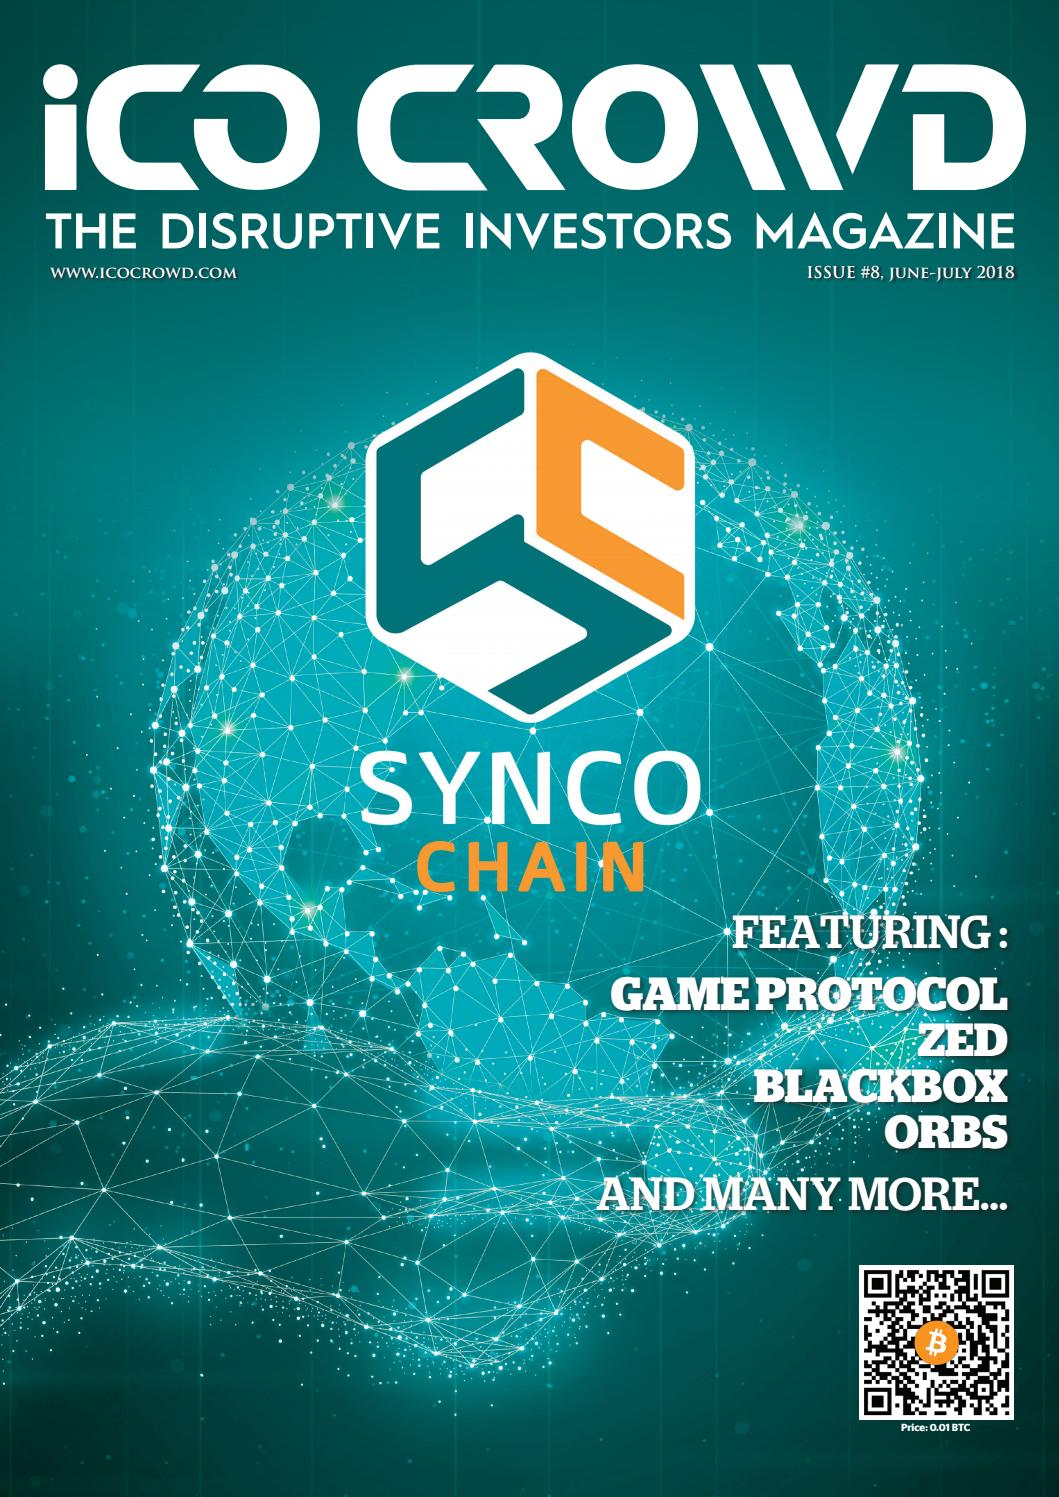 ico crowd magazine